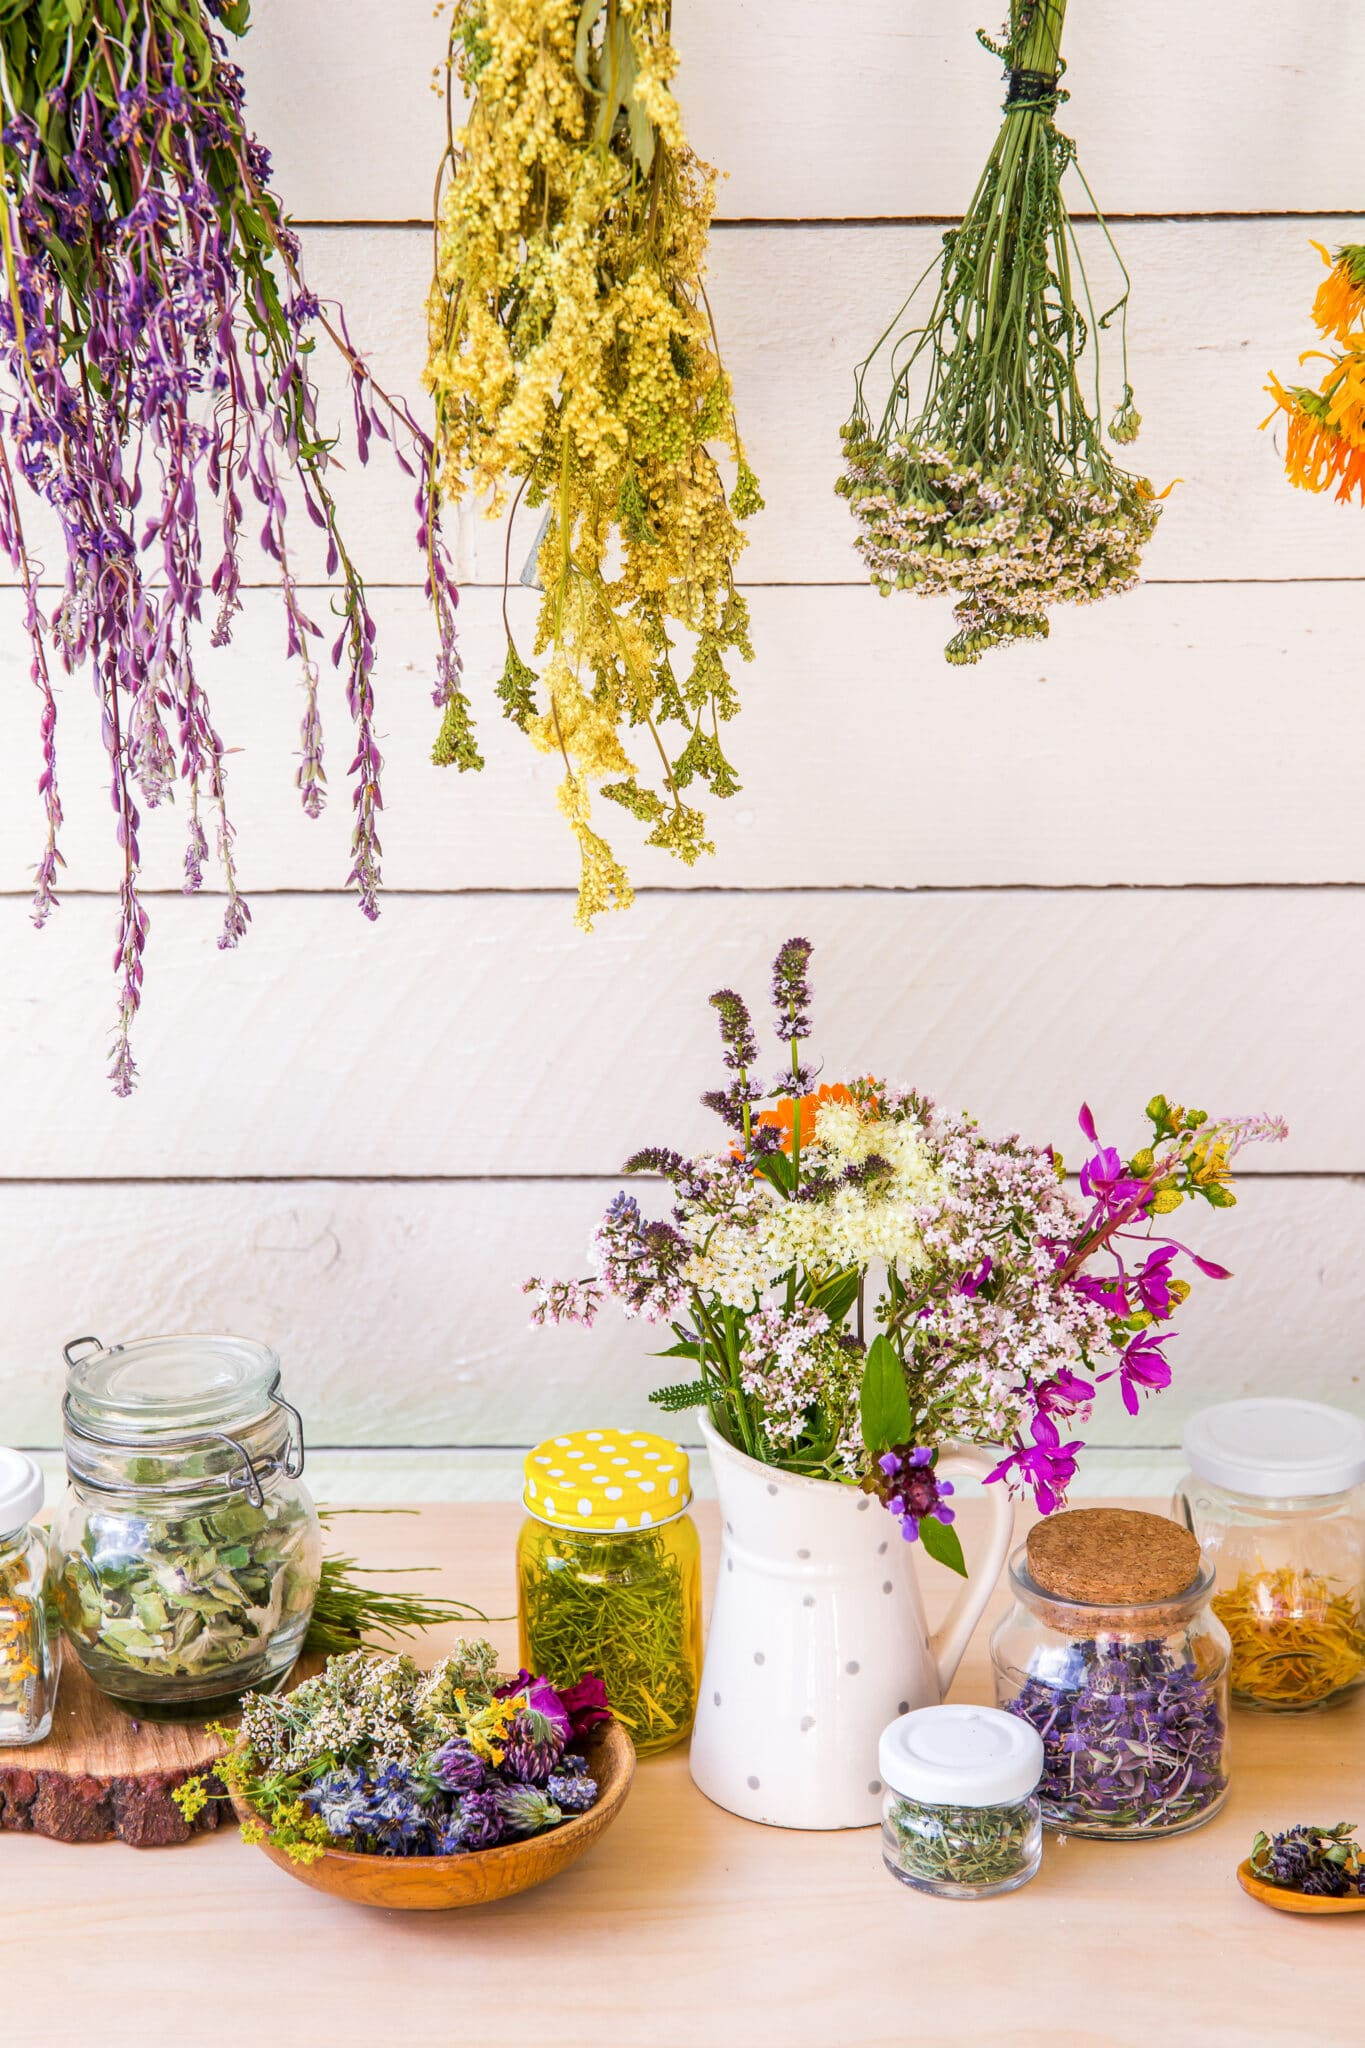 Dried flowers and herbs in jars on a wooden tabletop framed with hanging dried colourful flower bundles.